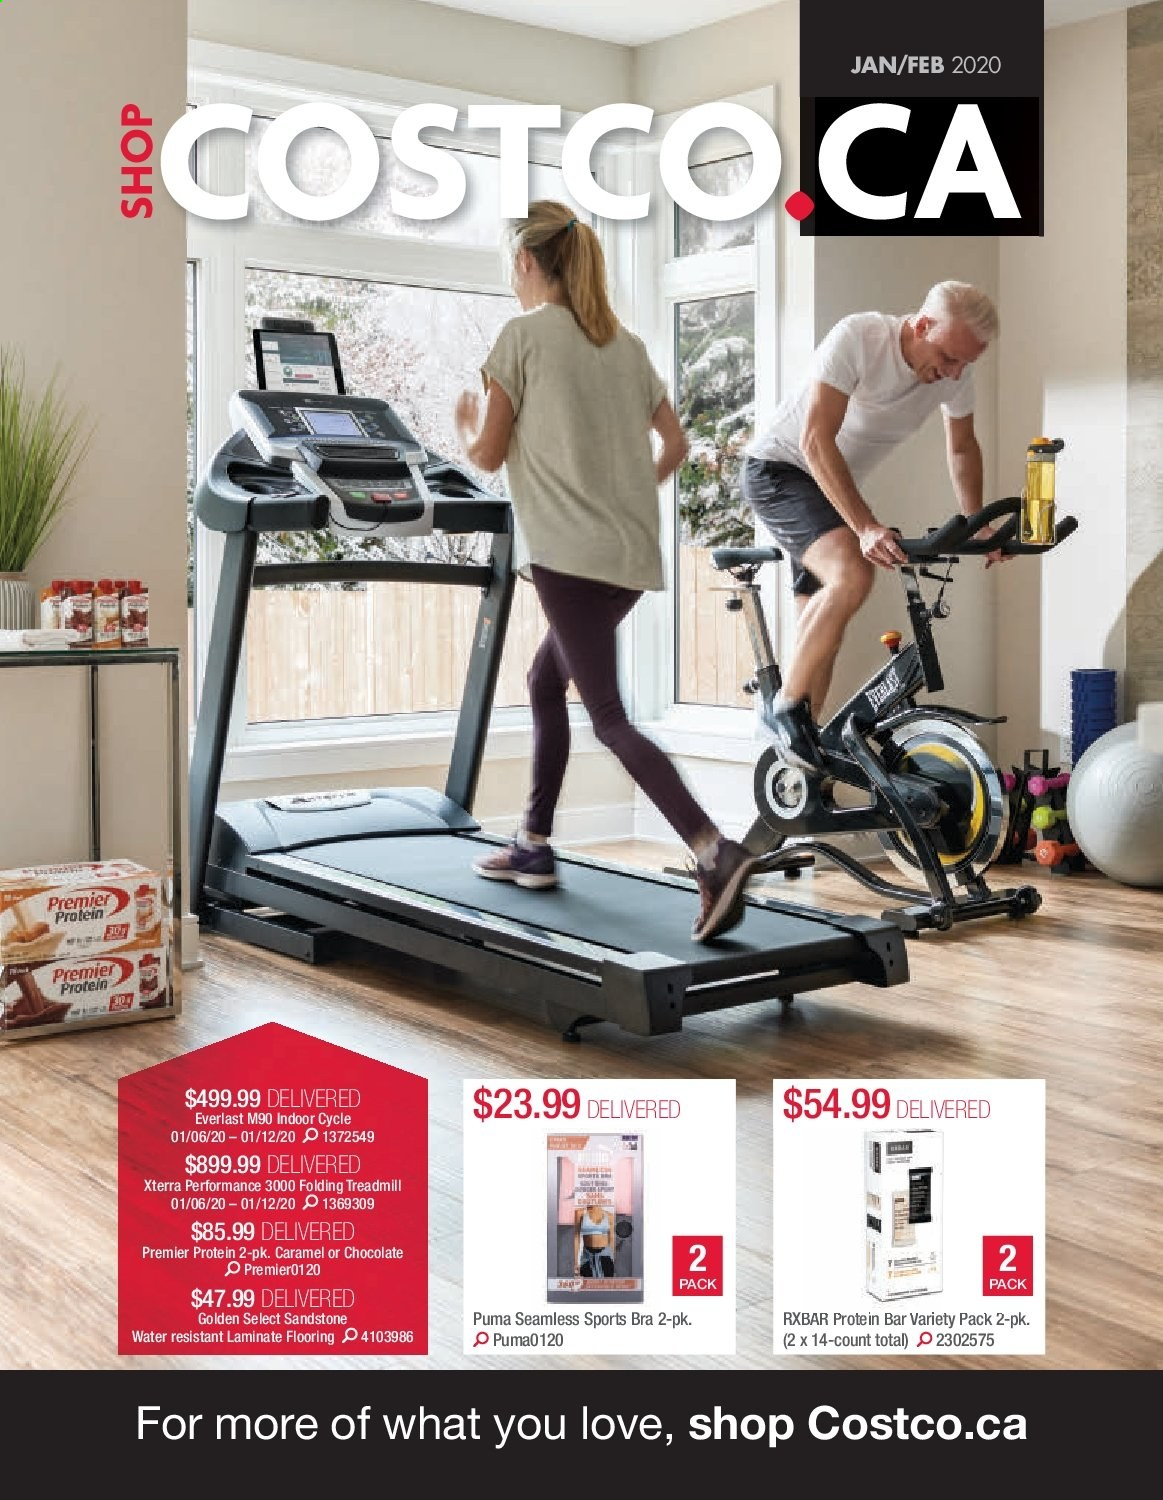 Costco Flyer - January 01, 2020 - February 29, 2020 - Sales products - bra, caramel, everlast, flooring, protein, puma, total, protein bar. Page 1.